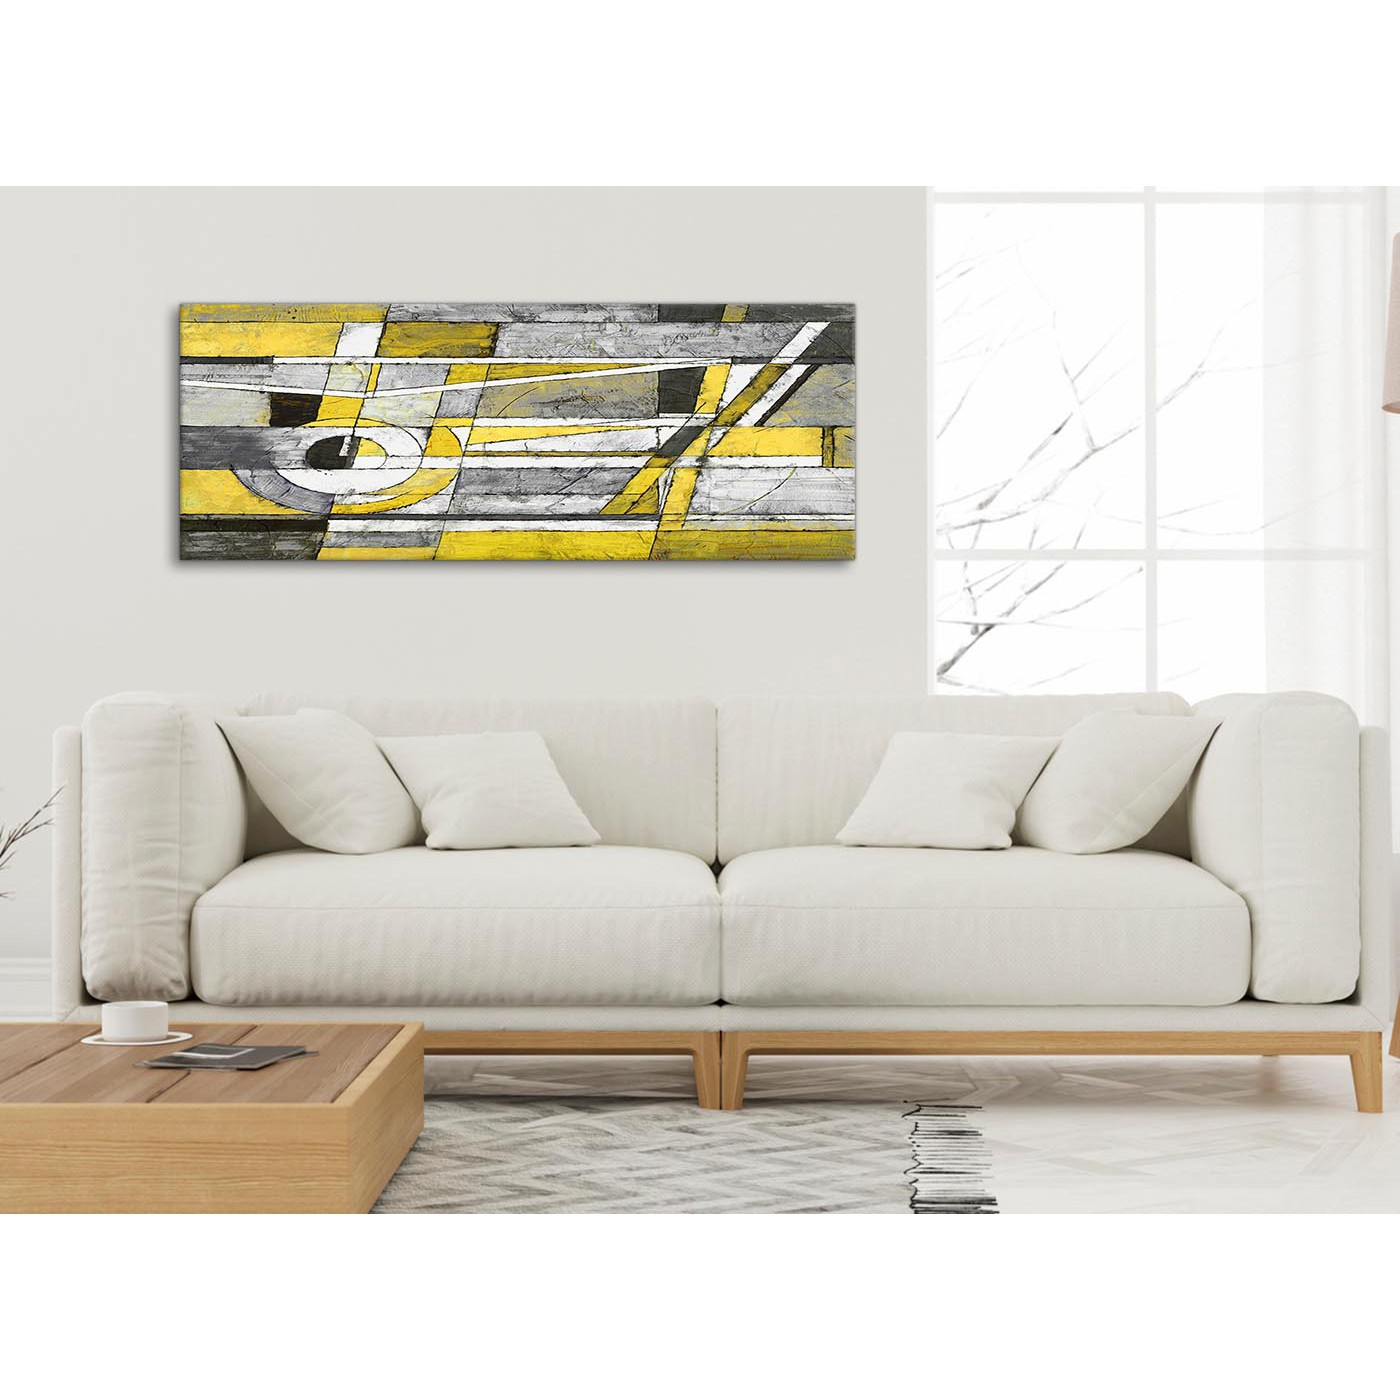 nice artwork living room sofas ideas yellow grey painting canvas wall art accessories display gallery item 3 modern pictures abstract 1400 120cm print 4